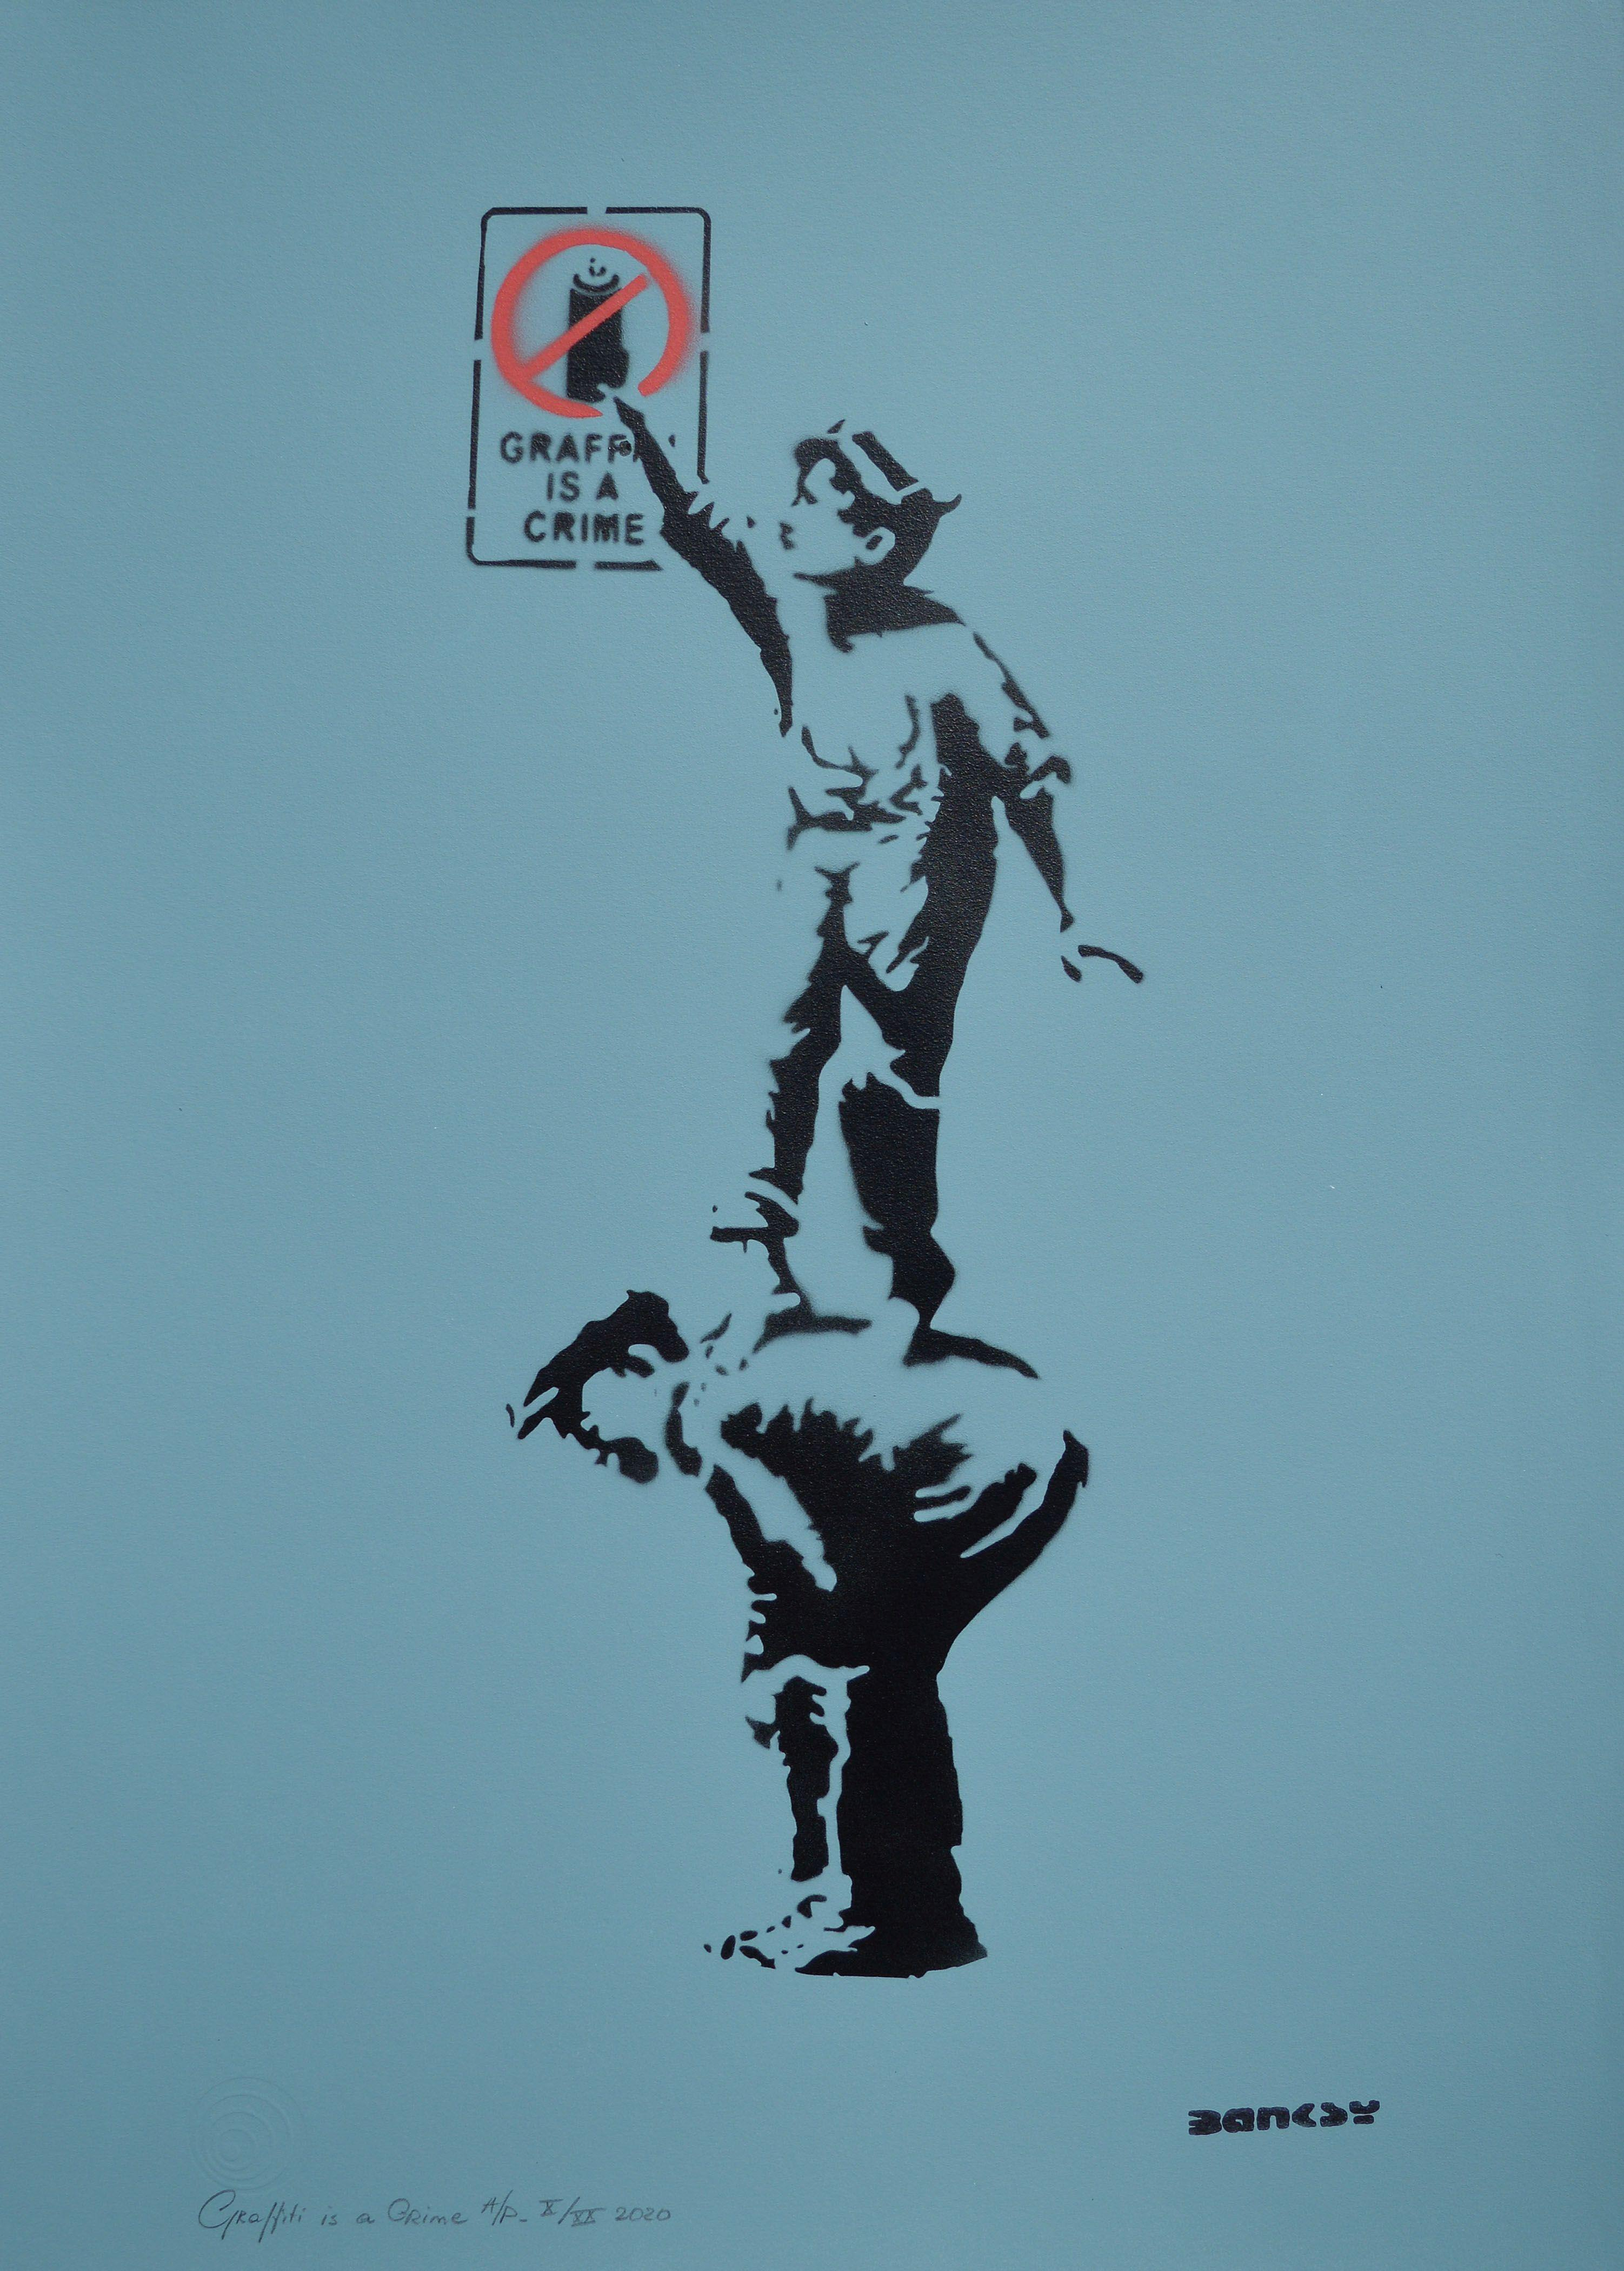 Graffiti is a Crime by   Banksy - Masterpiece Online